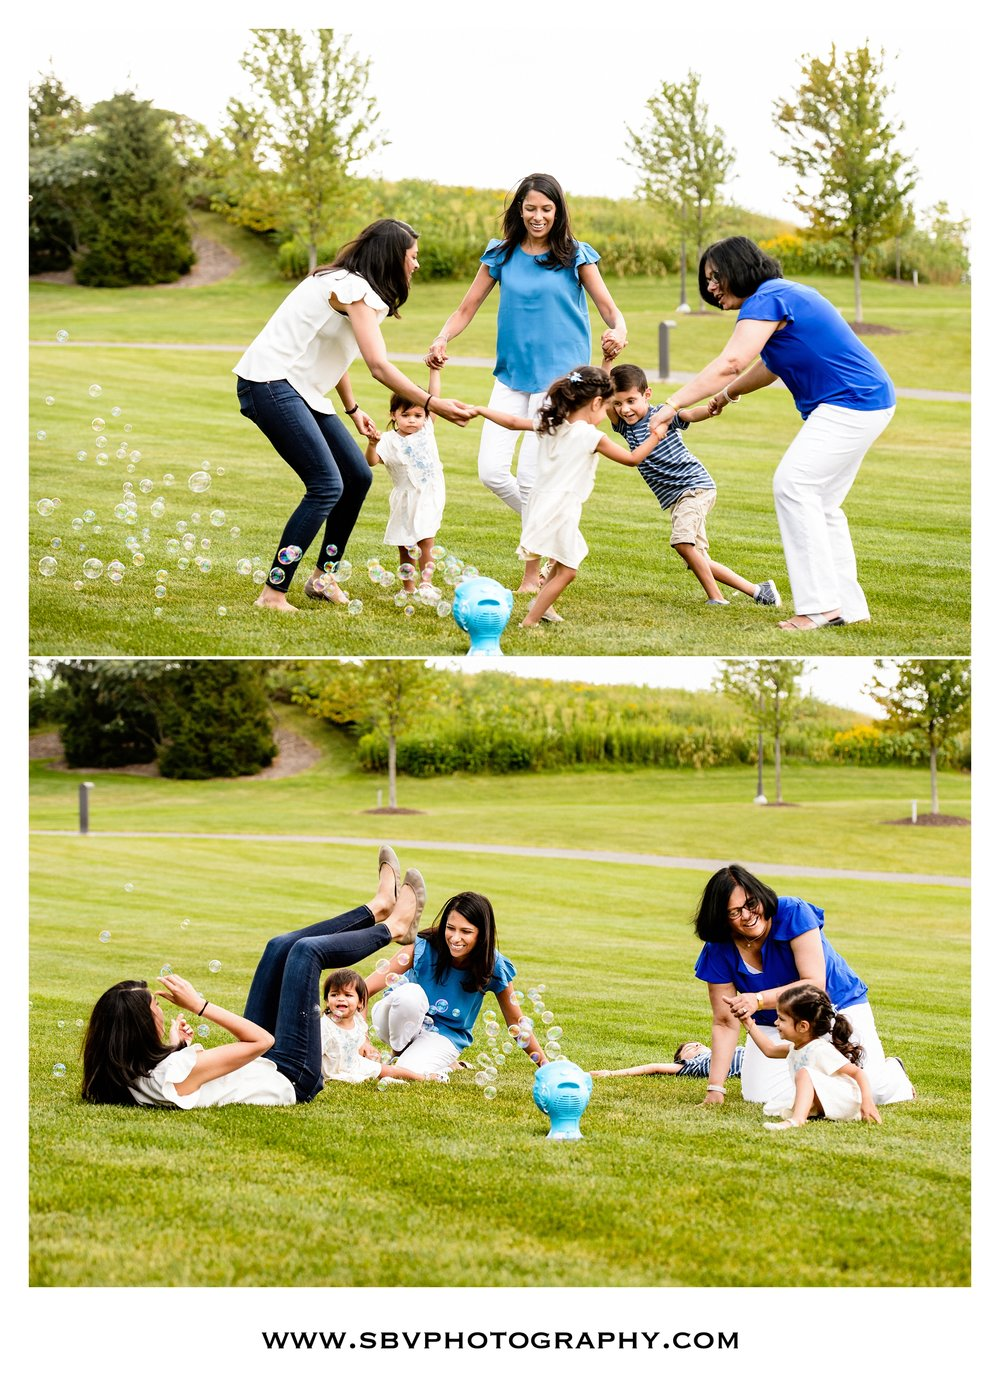 Family lifestyle pictures at Centennial Park.